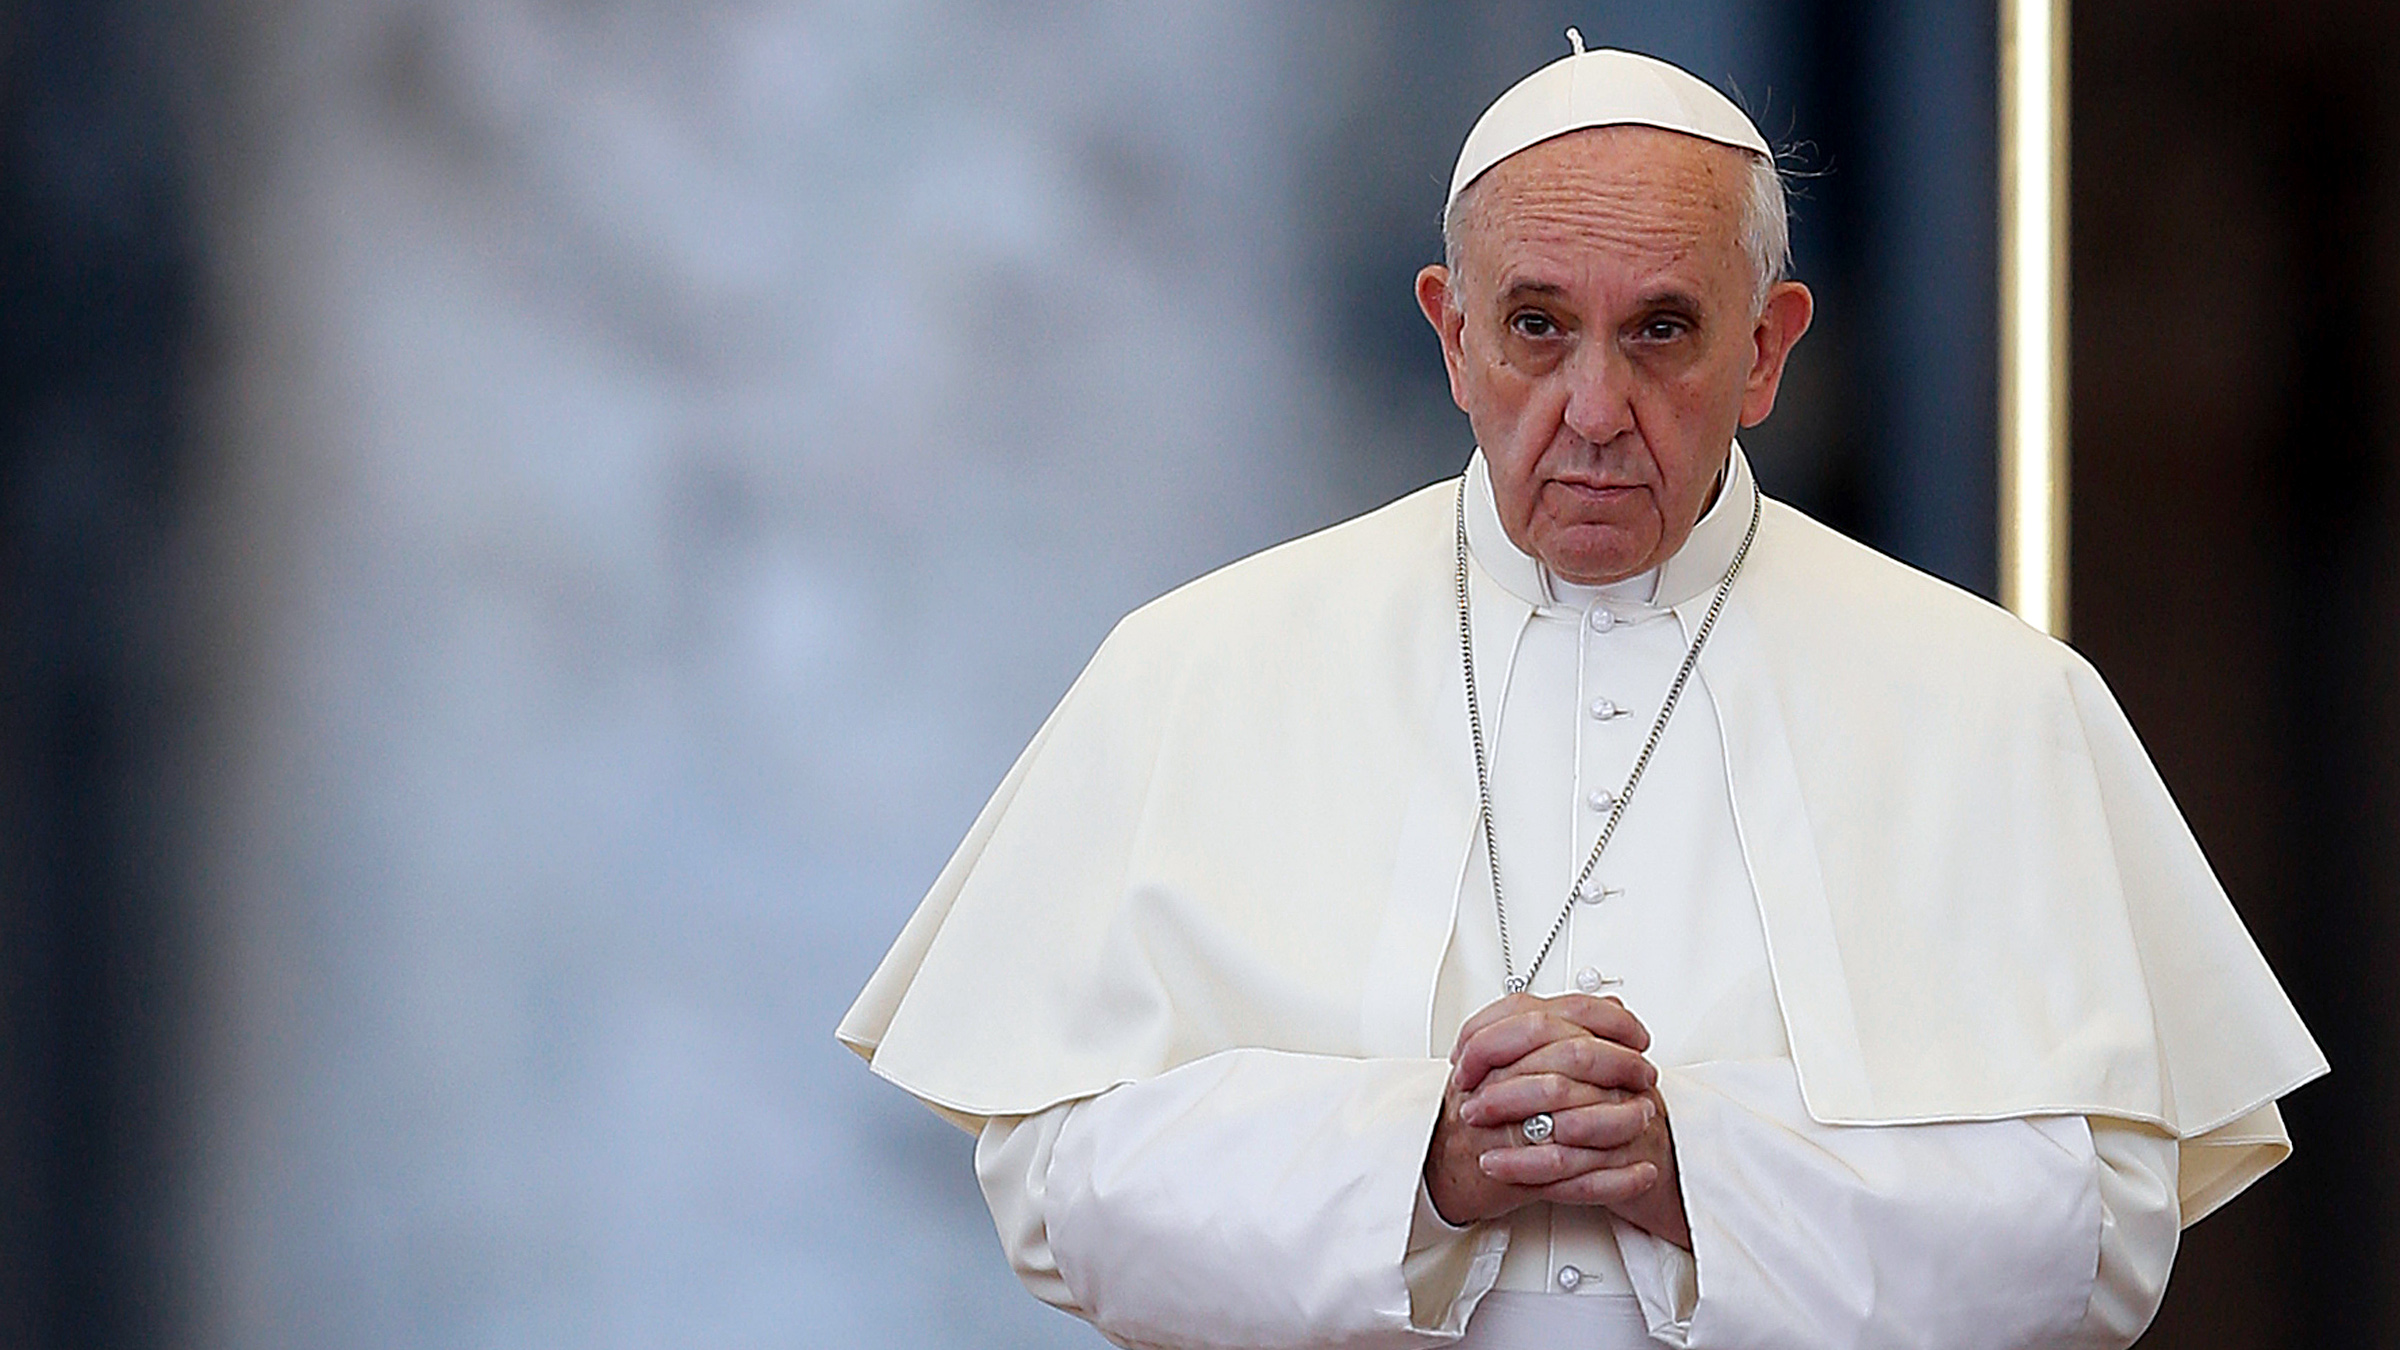 Pope Francis attends a prayer calling for peace in Syria, in Saint Peter's square at the Vatican September 7, 2013. Pope Francis has invited people of all faiths to join a day of fasting and prayer to call for an end to the conflict in Syria on Saturday.